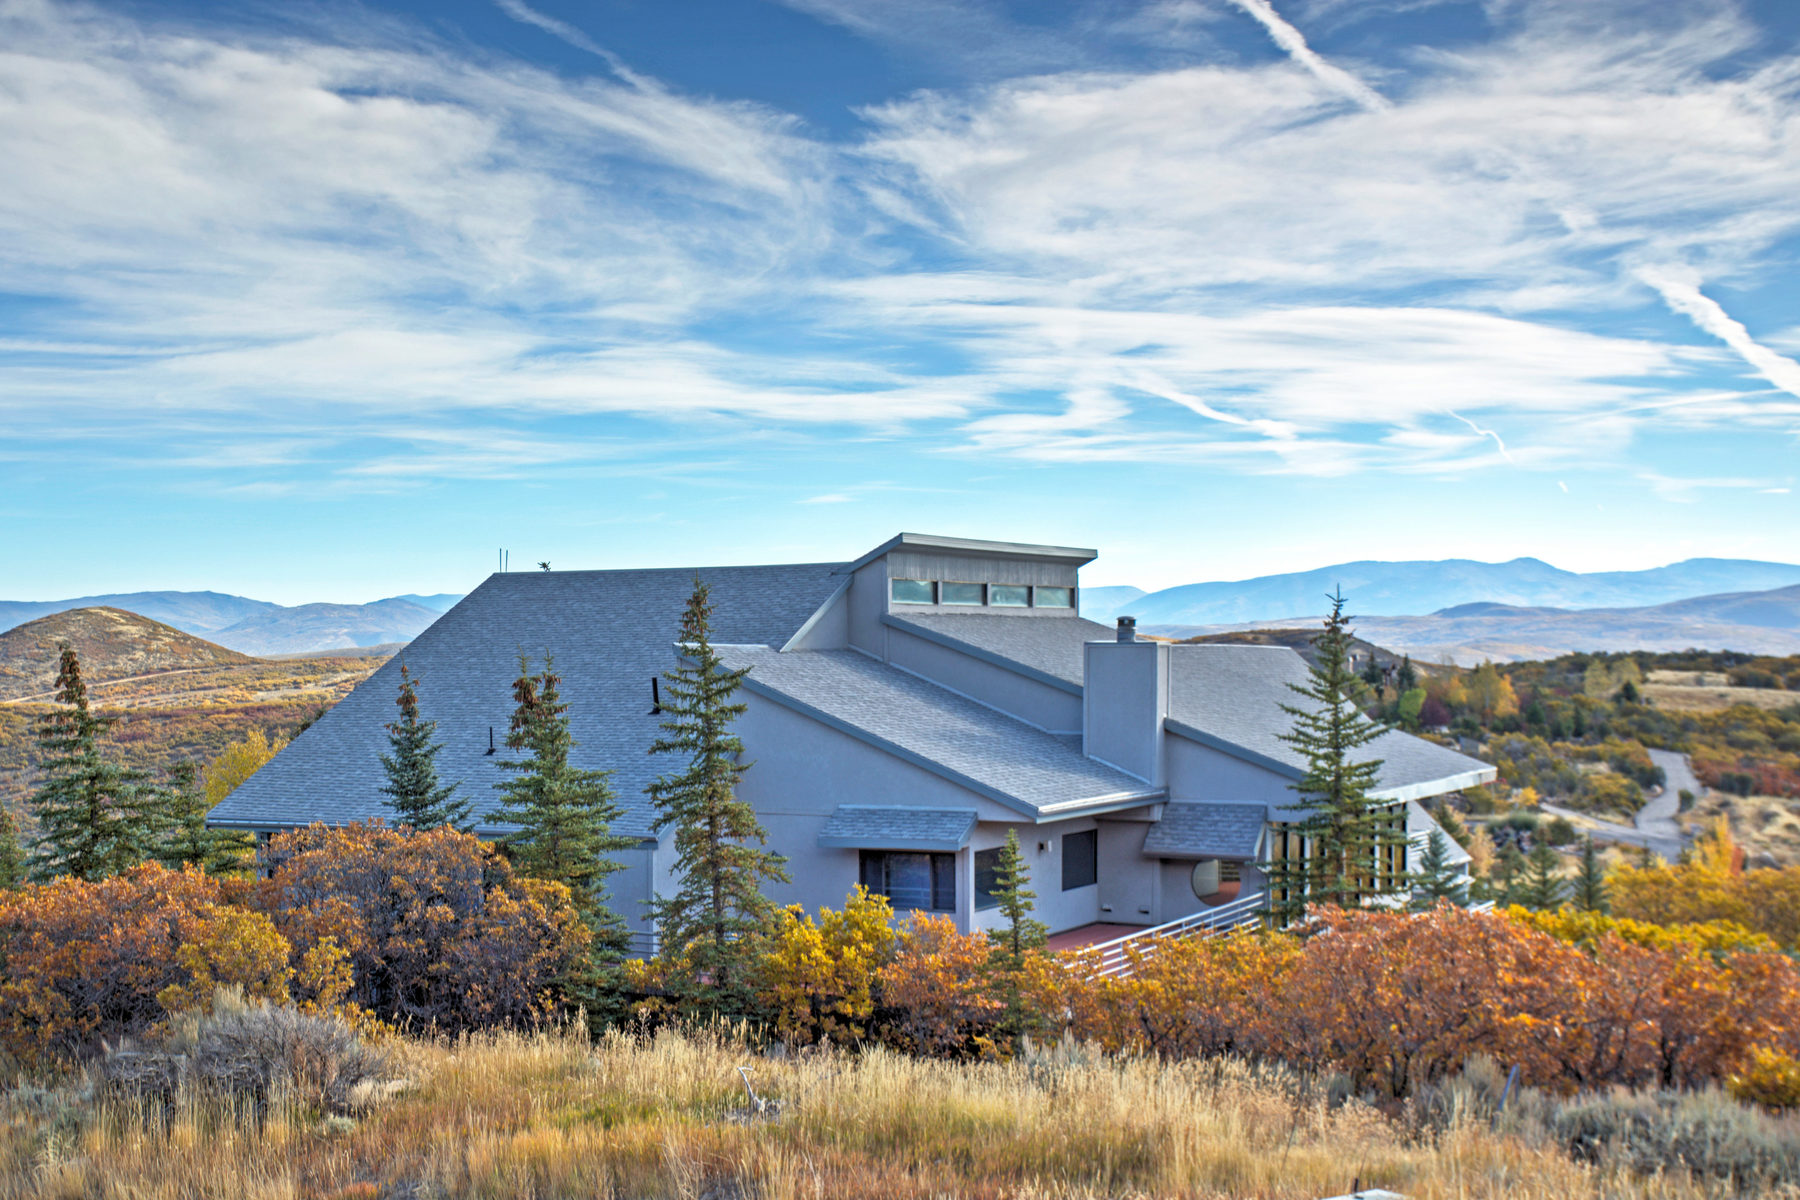 Single Family Home for Sale at This Mountaintop Gem is the Perfect Personal or Corporate Retreat 325 Mountain Top Dr Park City, Utah, 84060 United States